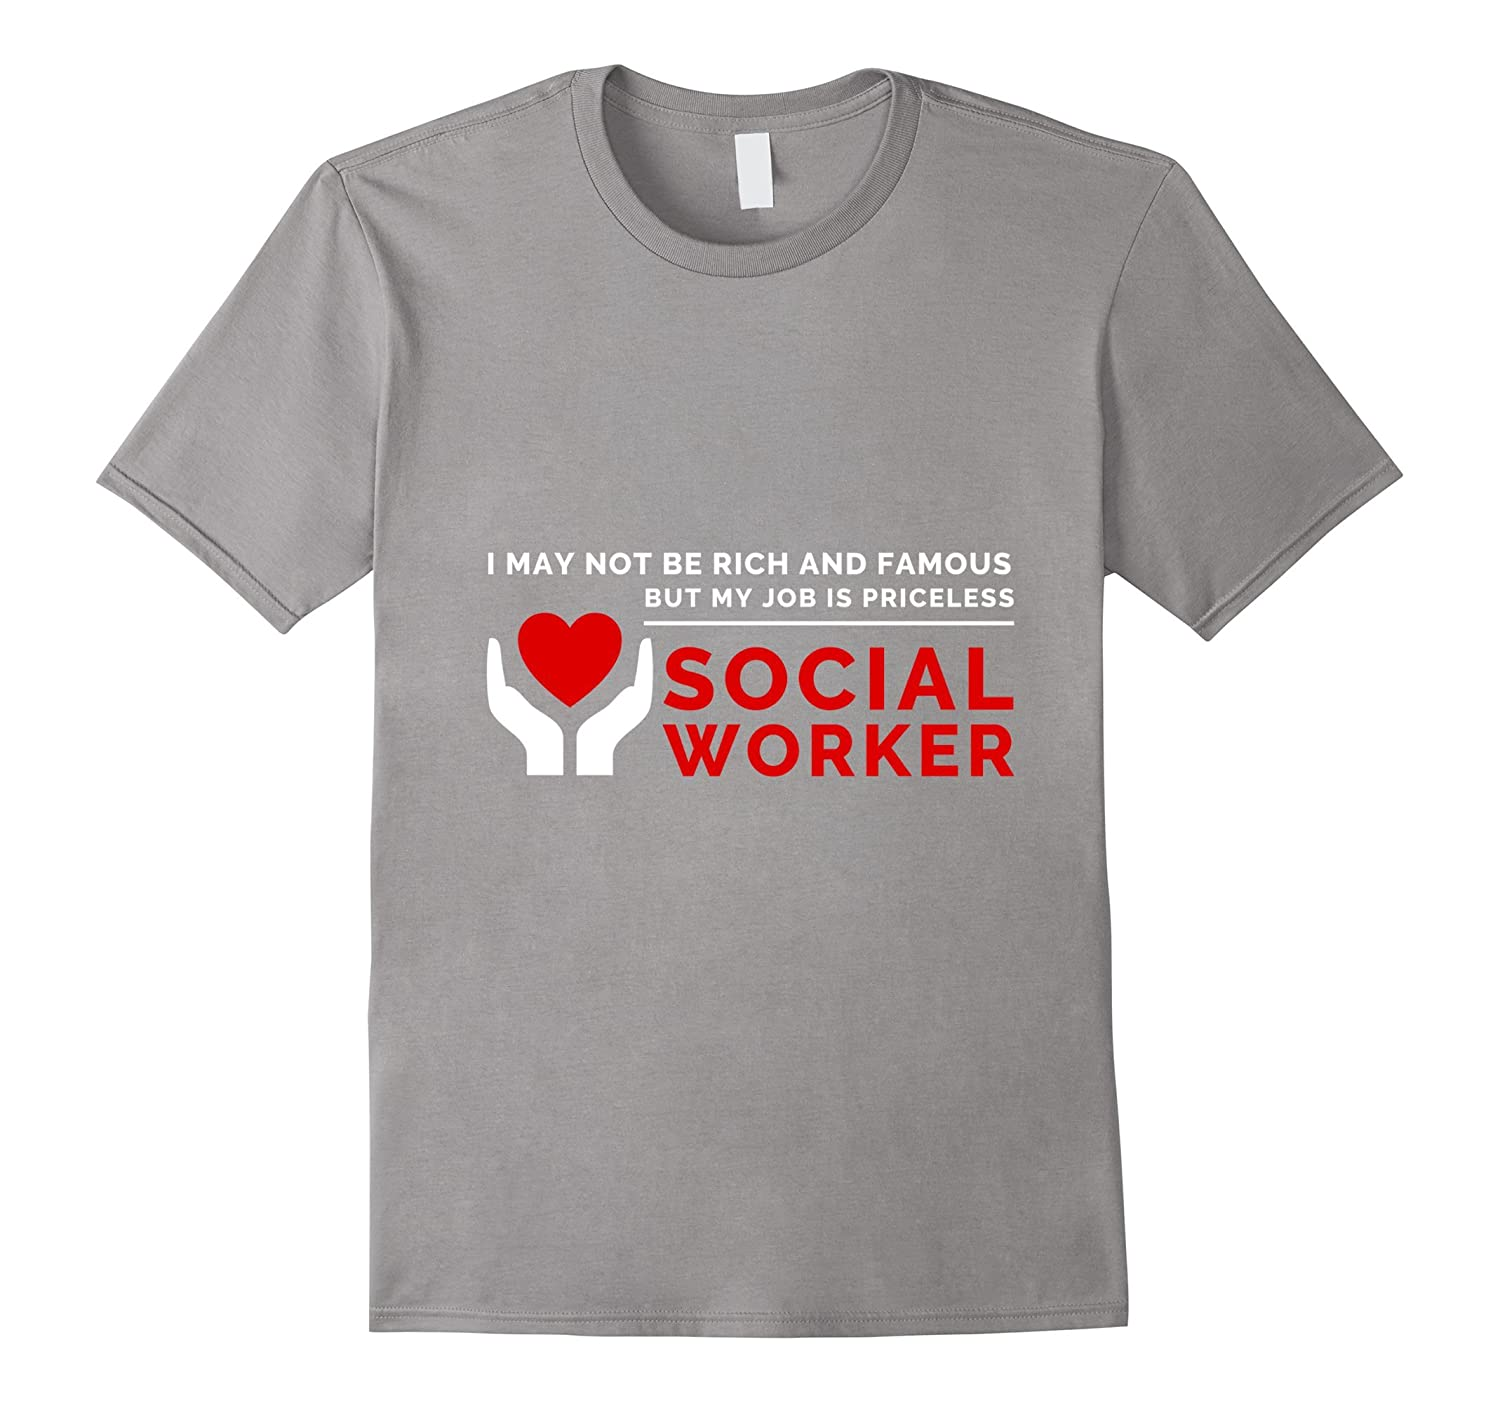 My Job Is Priceless – Social Worker Quote Shirt-TD